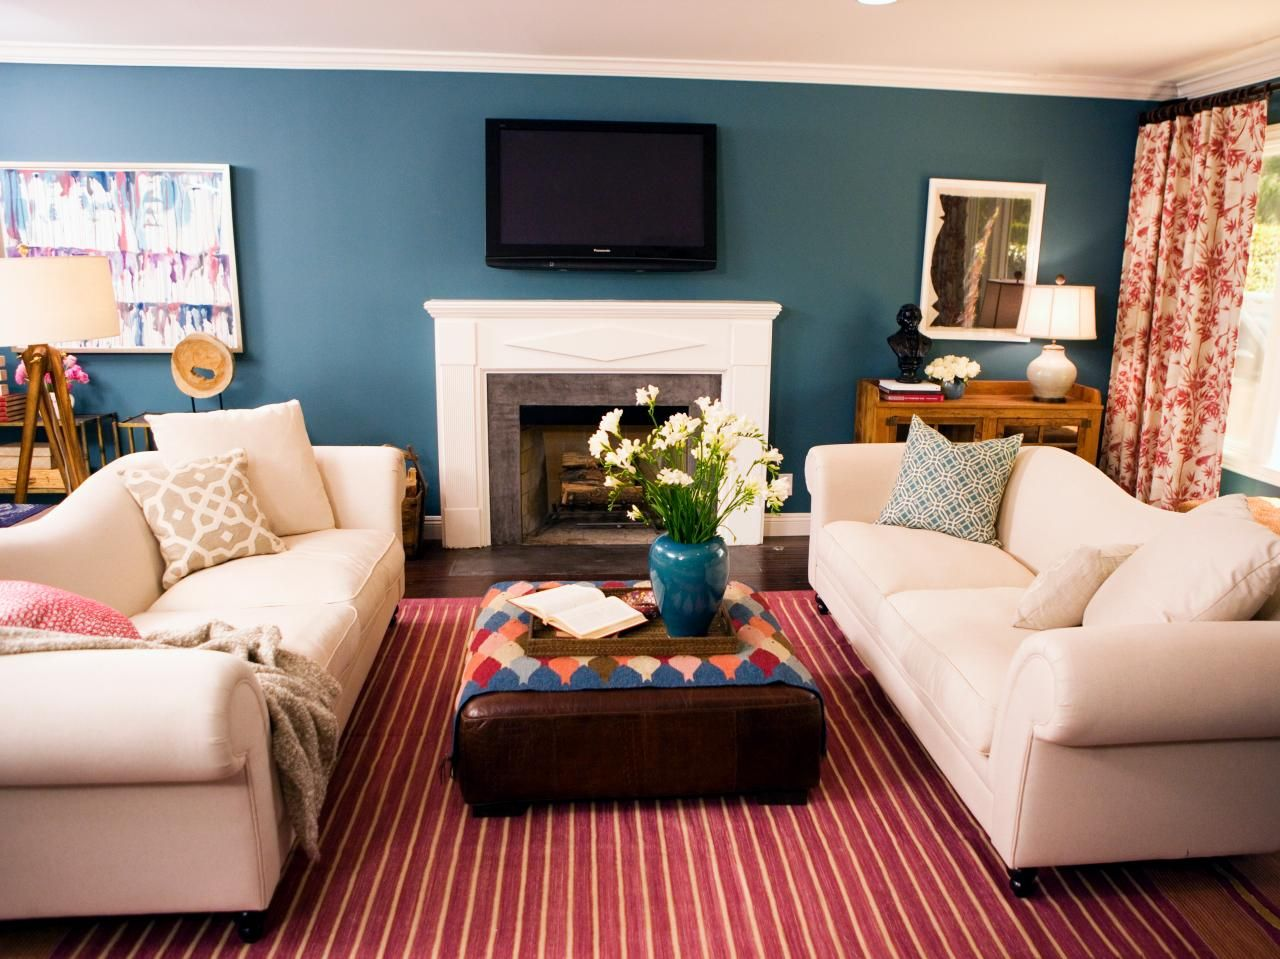 Blue Living Room With Red Striped Area Rug | Living room ...